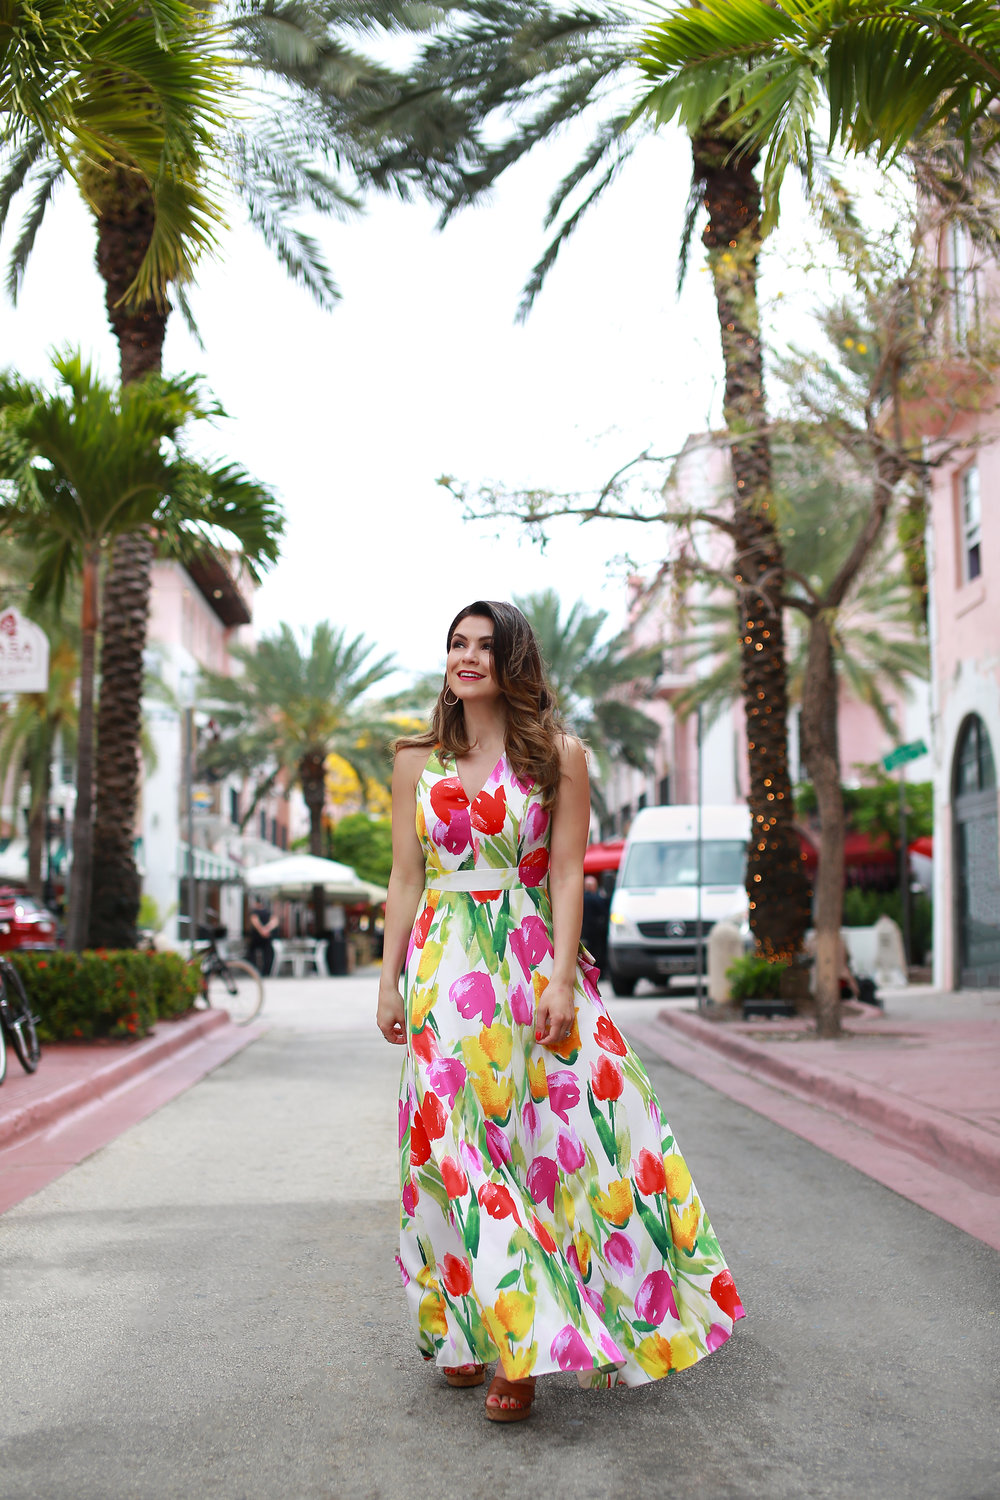 The Eliana Maxi Dress - Look familiar? This tulip print maxi is the dress that created so much buzz after appearing in our Spring 2019 teaser video.